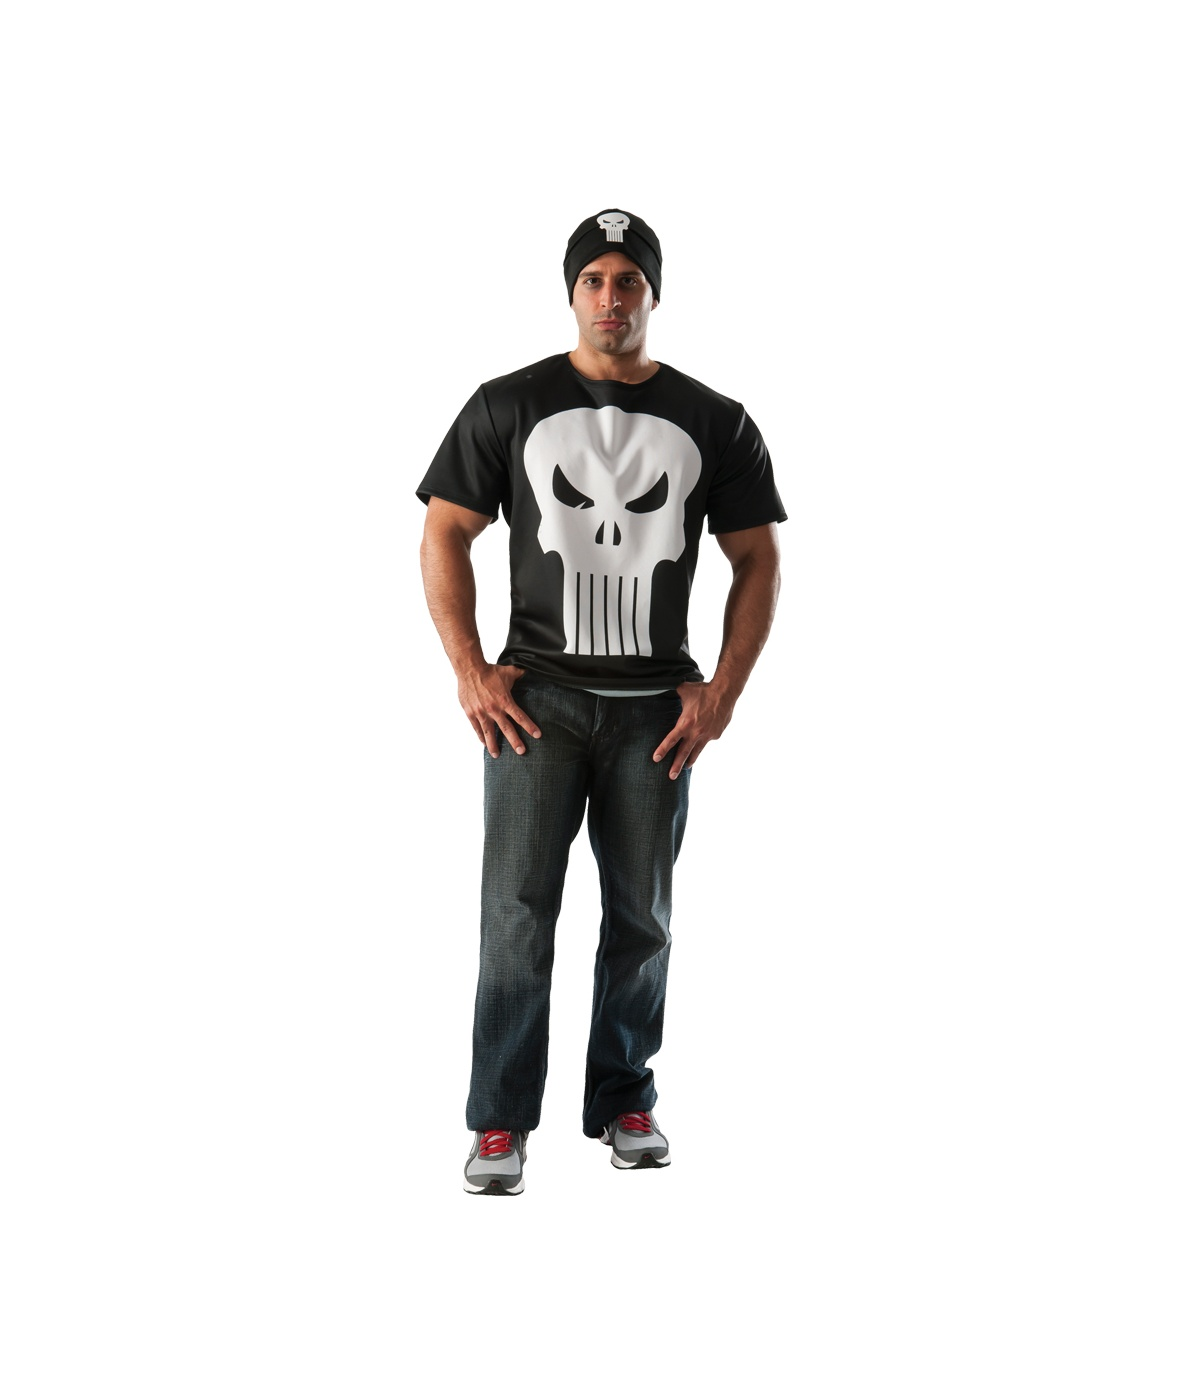 Marvel Halloween Costumes For Adults Marvel Punisher Adult Costume